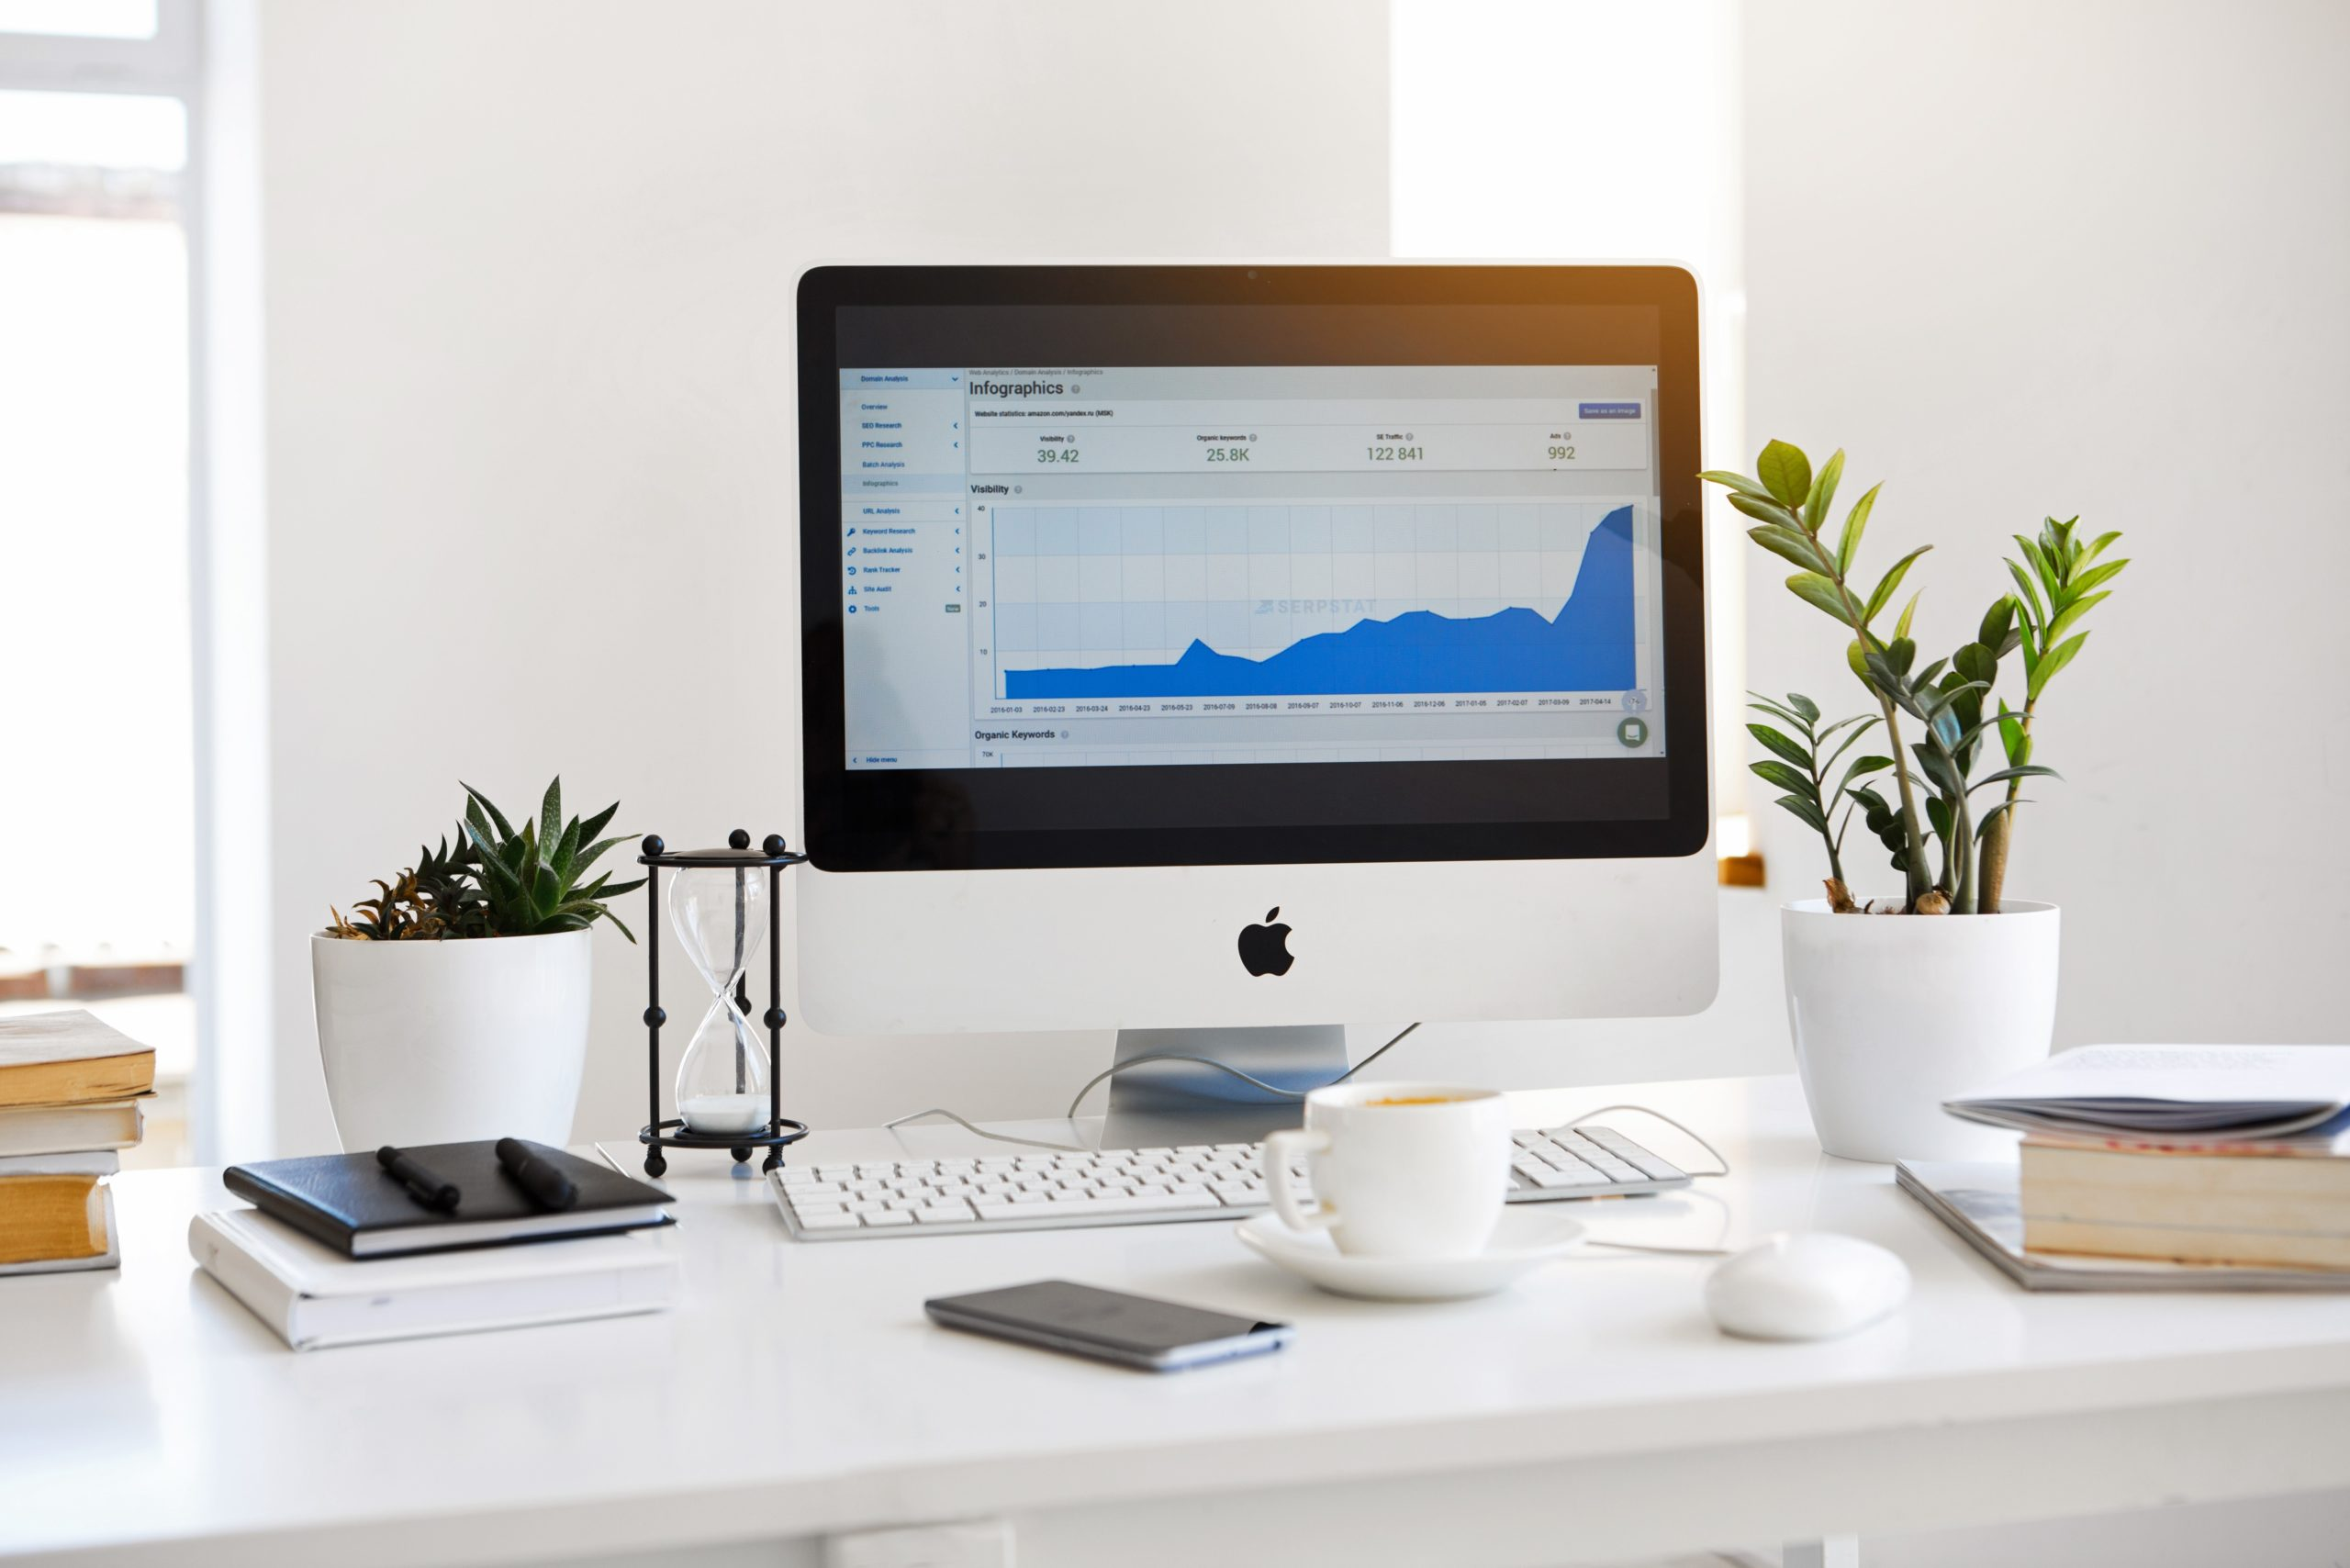 Analytics Tool on iMac Screen, Located on Top of White Desk